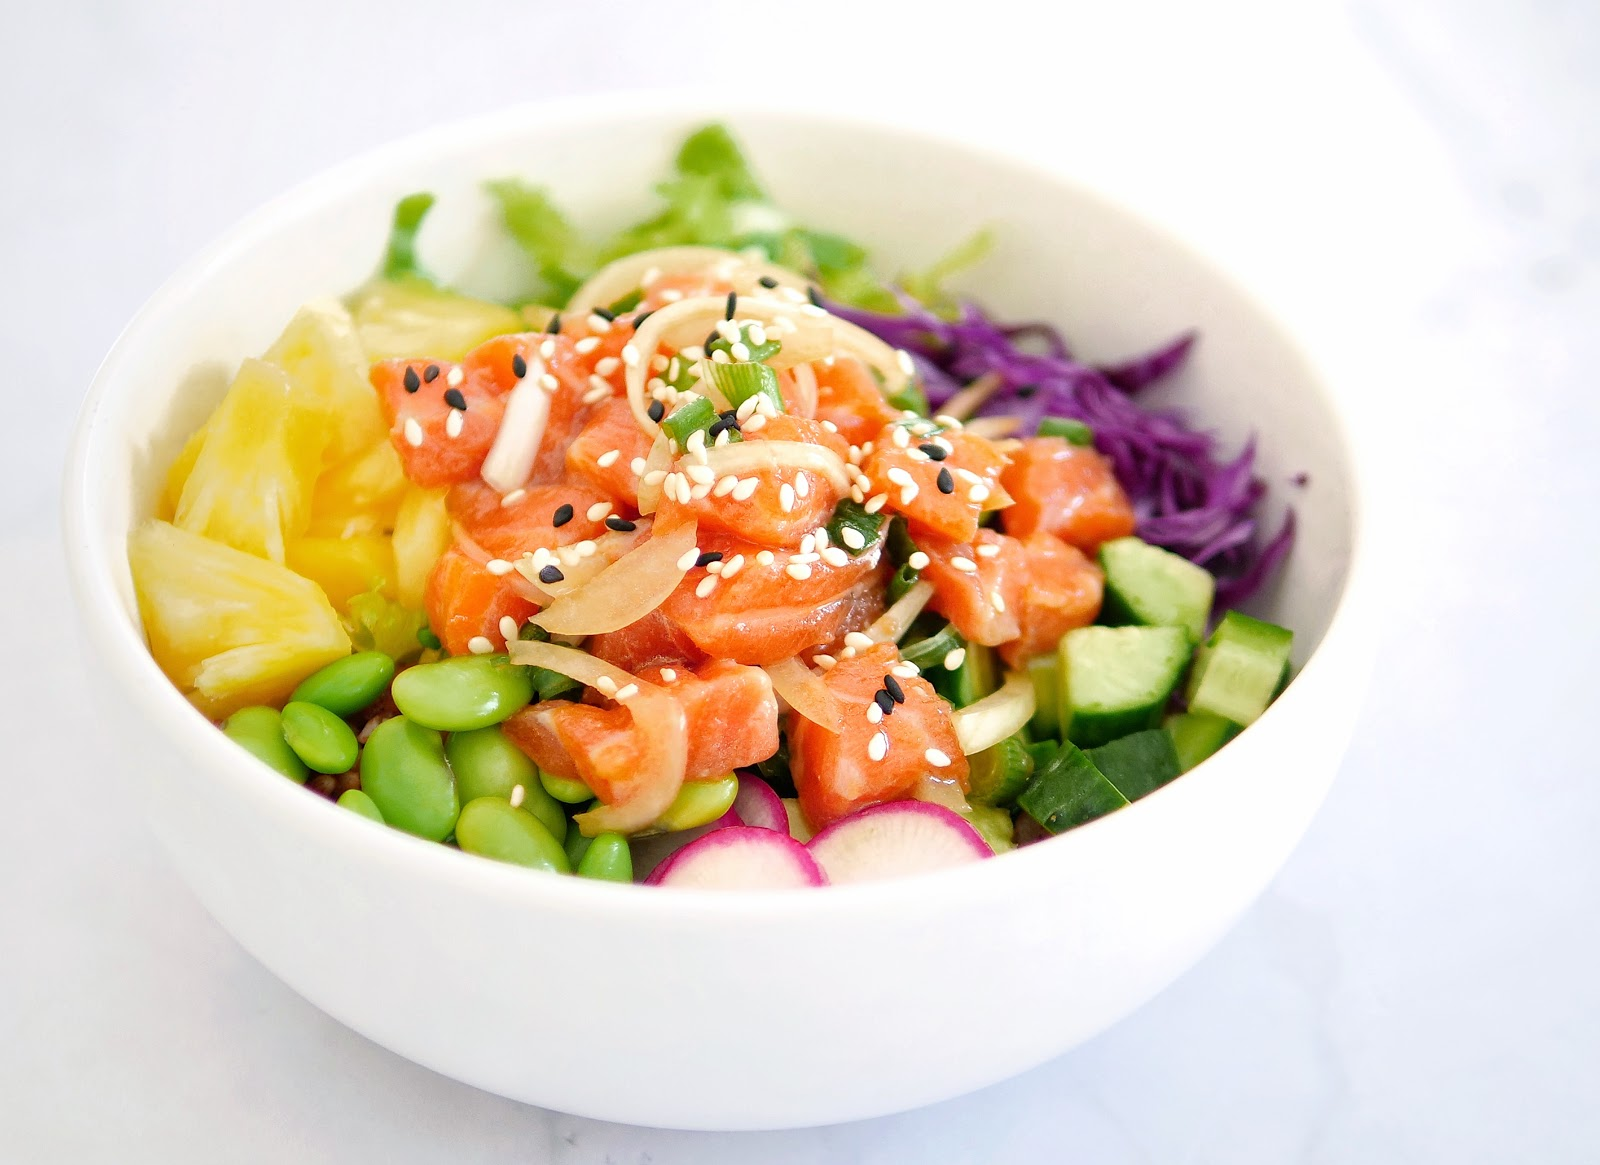 Homemade Poke Bowl Salmon Poke Recipe Heytheresia Indonesian Food Travel Blogger